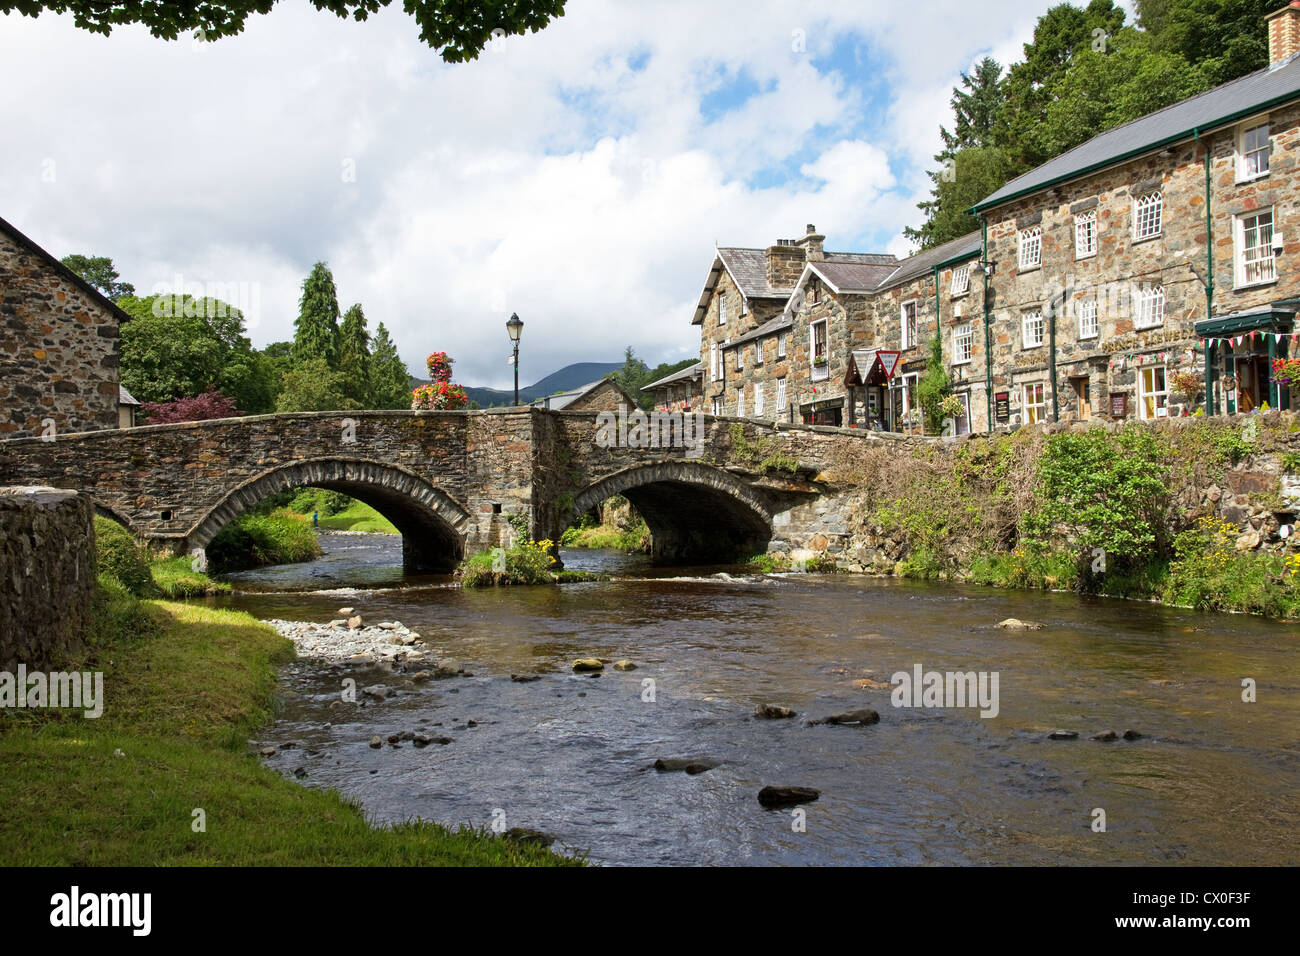 Village of Beddgelert and River Colwyn , Snowdonia National Park, Gwynedd, North Wales, UK - Stock Image